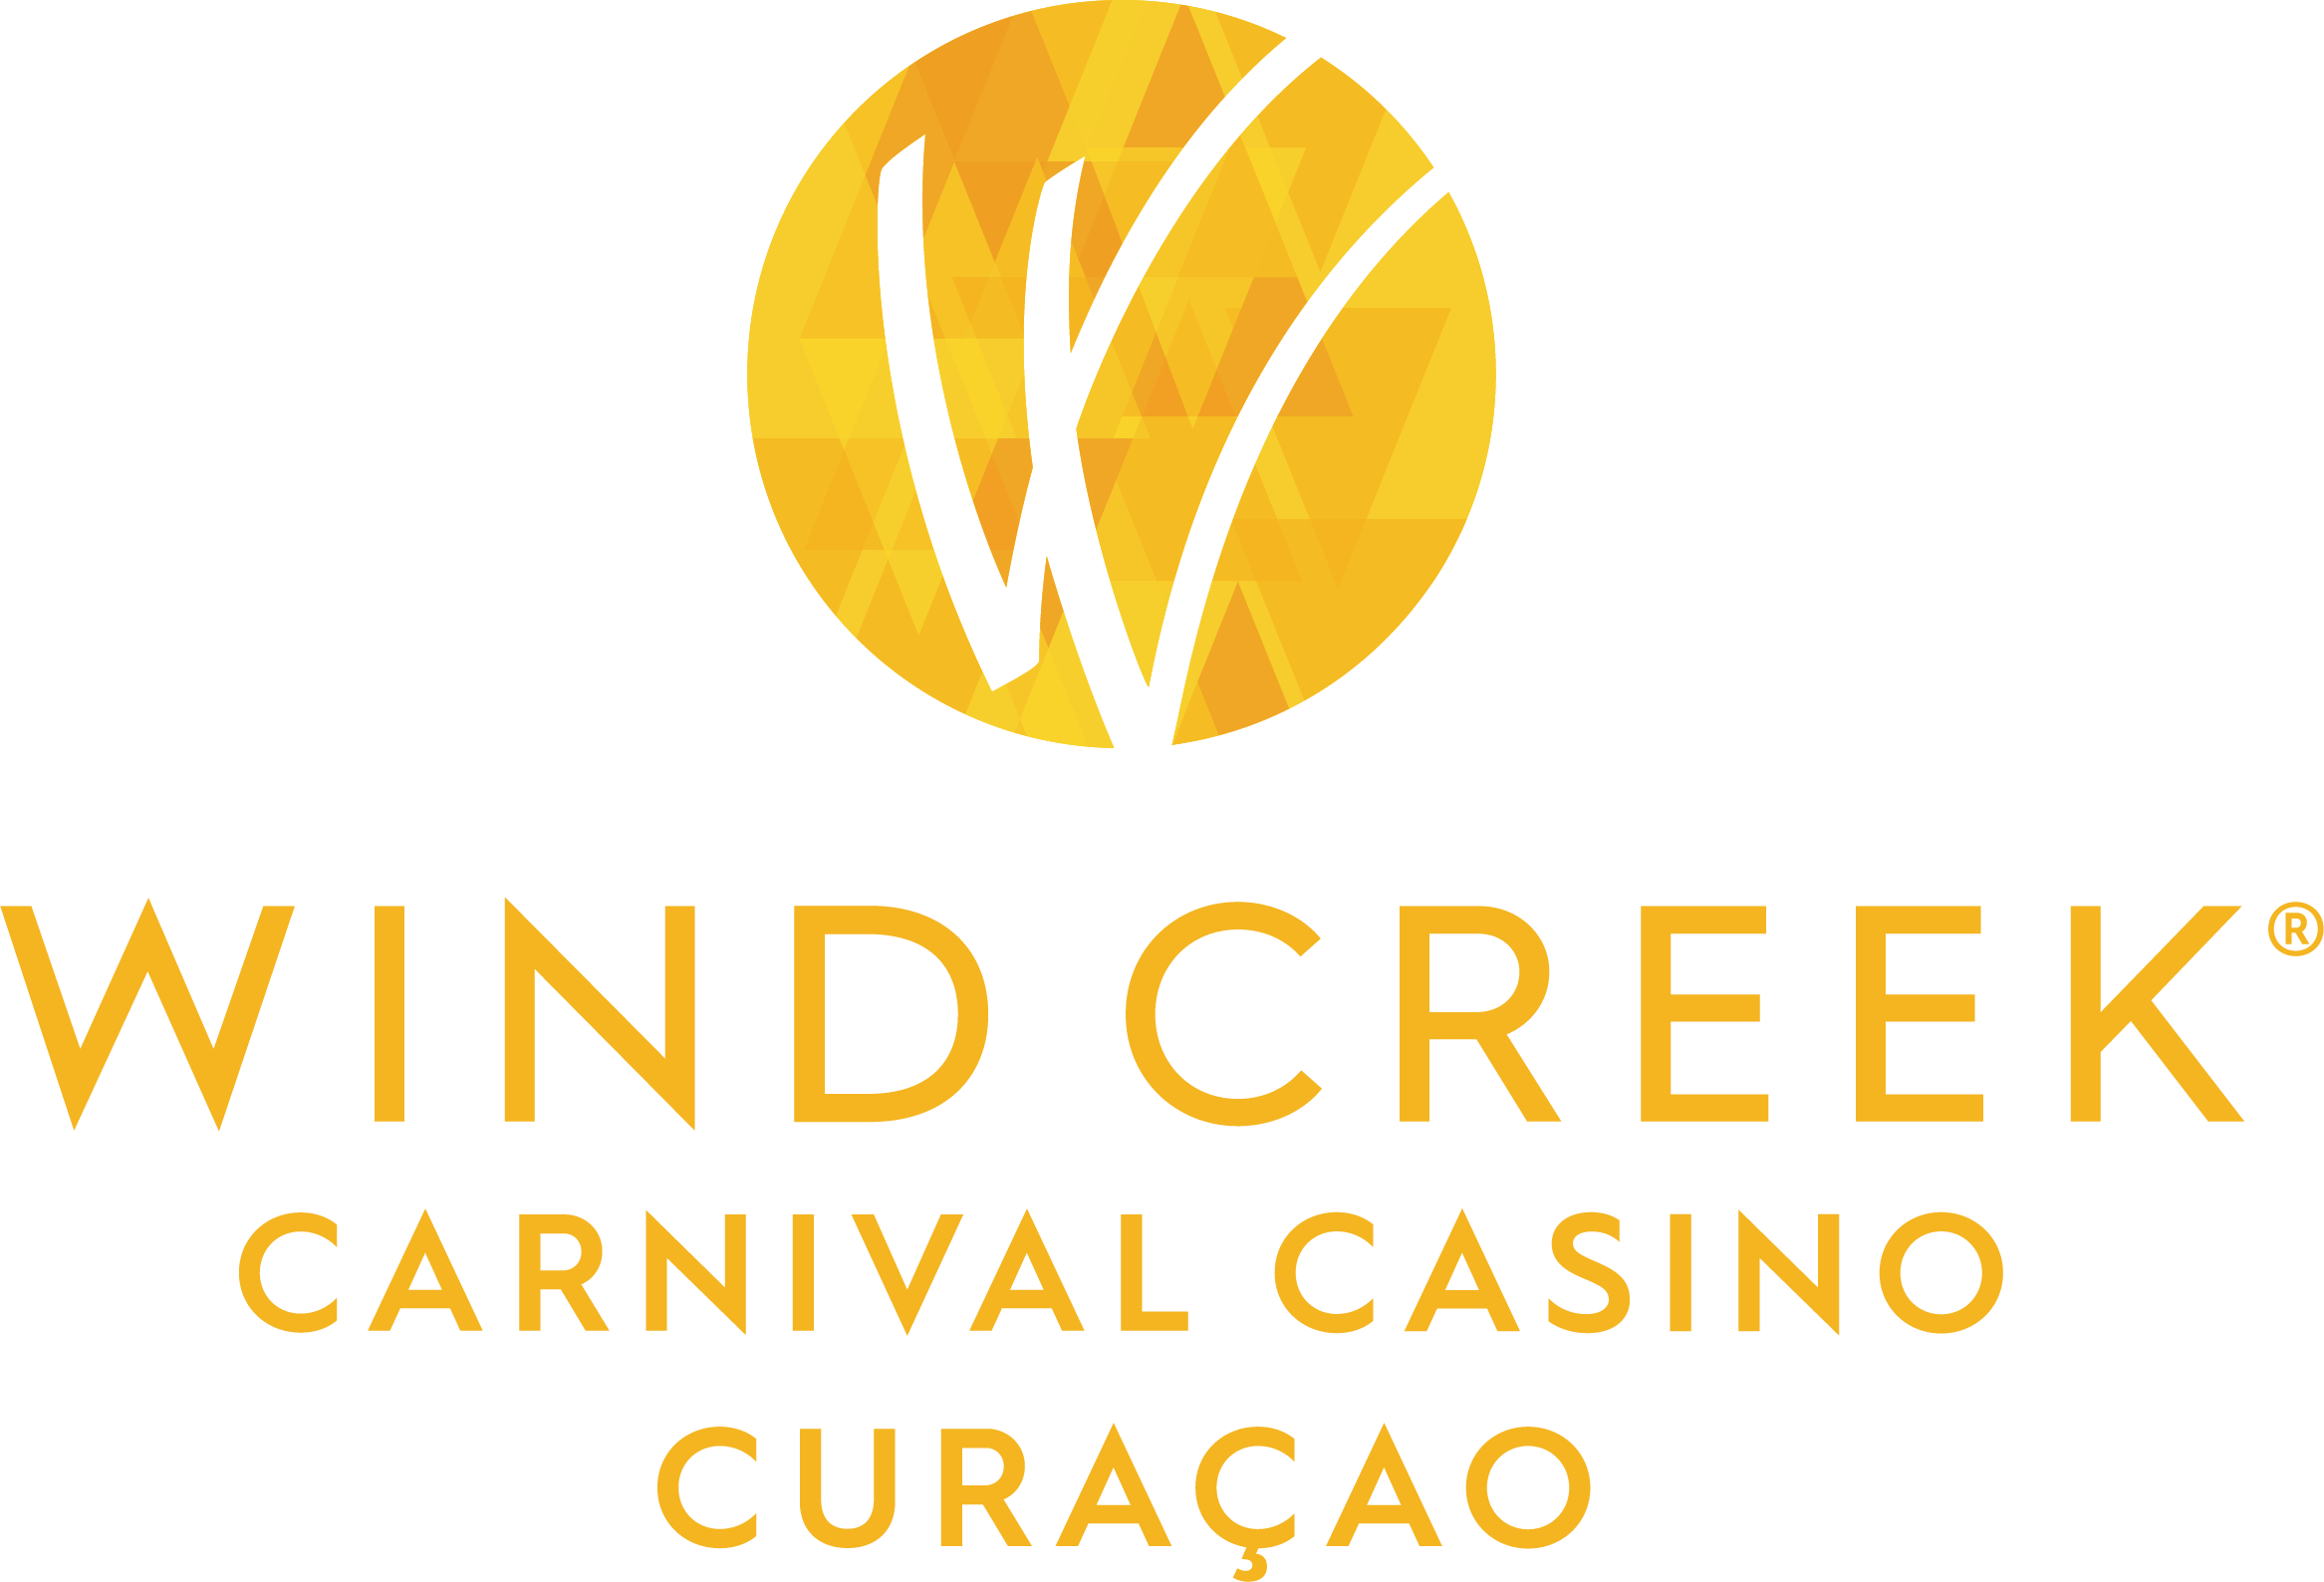 Wind Creek Carnival Casino Curaçao